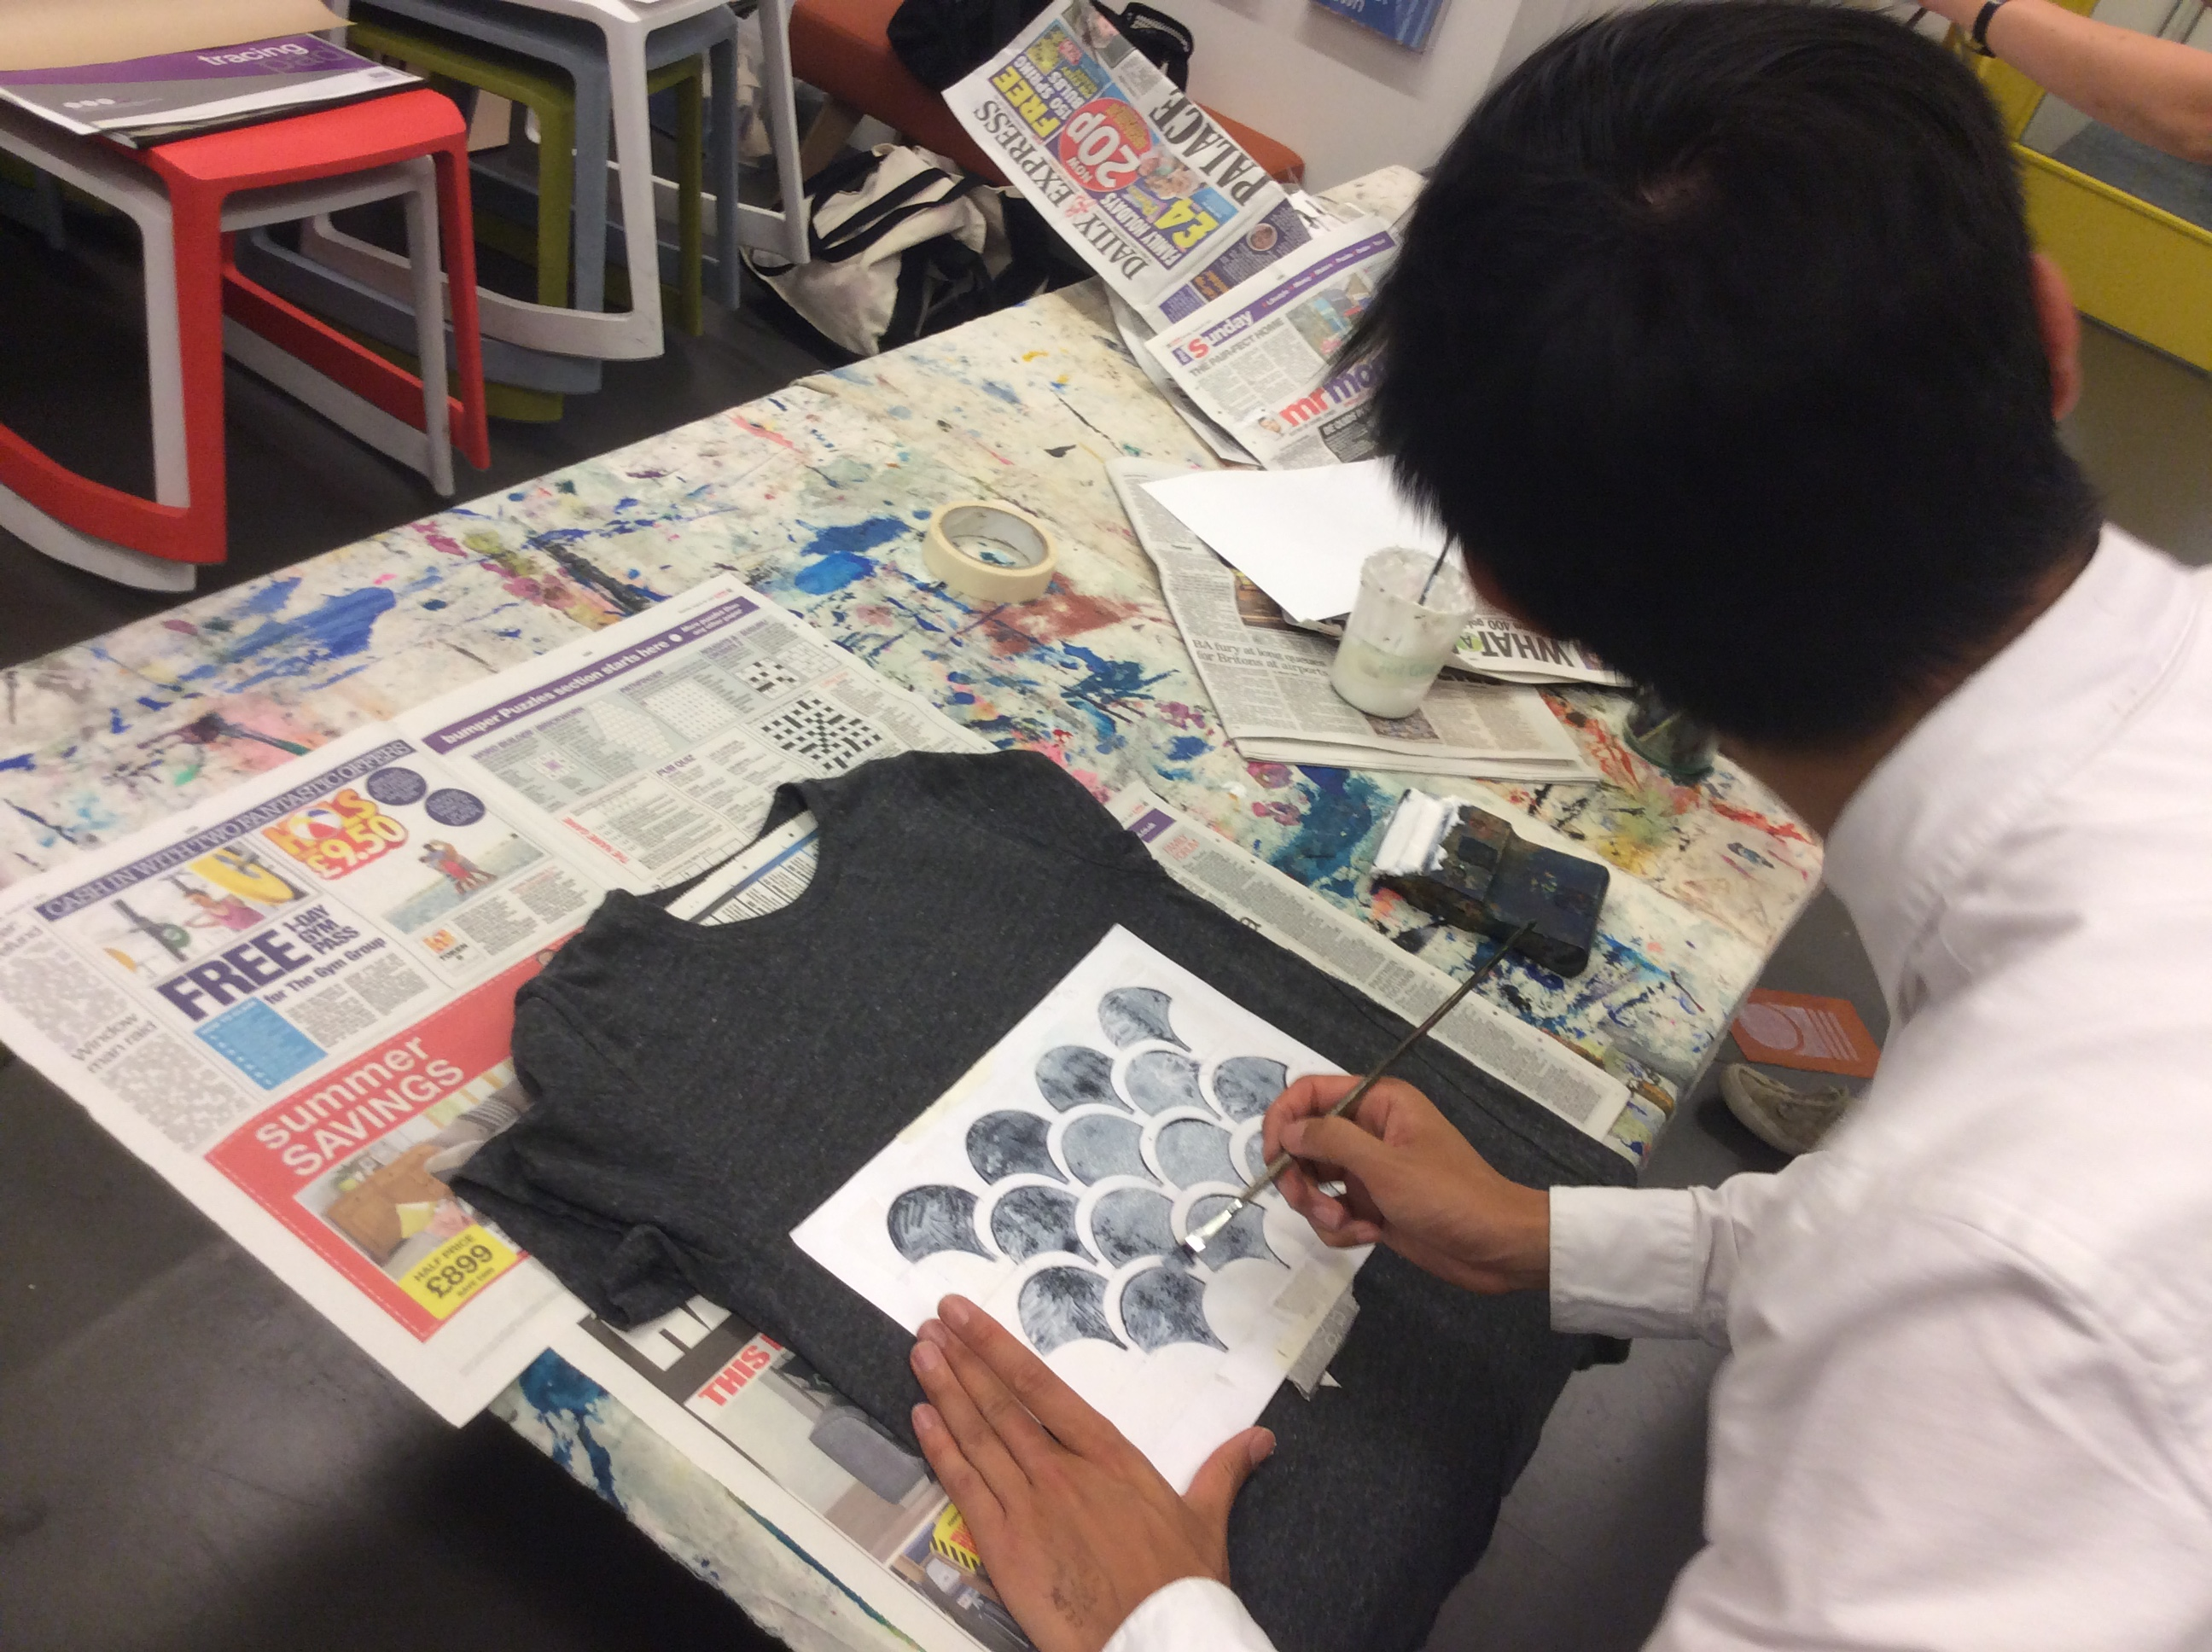 Metallic Printing Workshop at Copper Beech Café at JAGS Sports Club